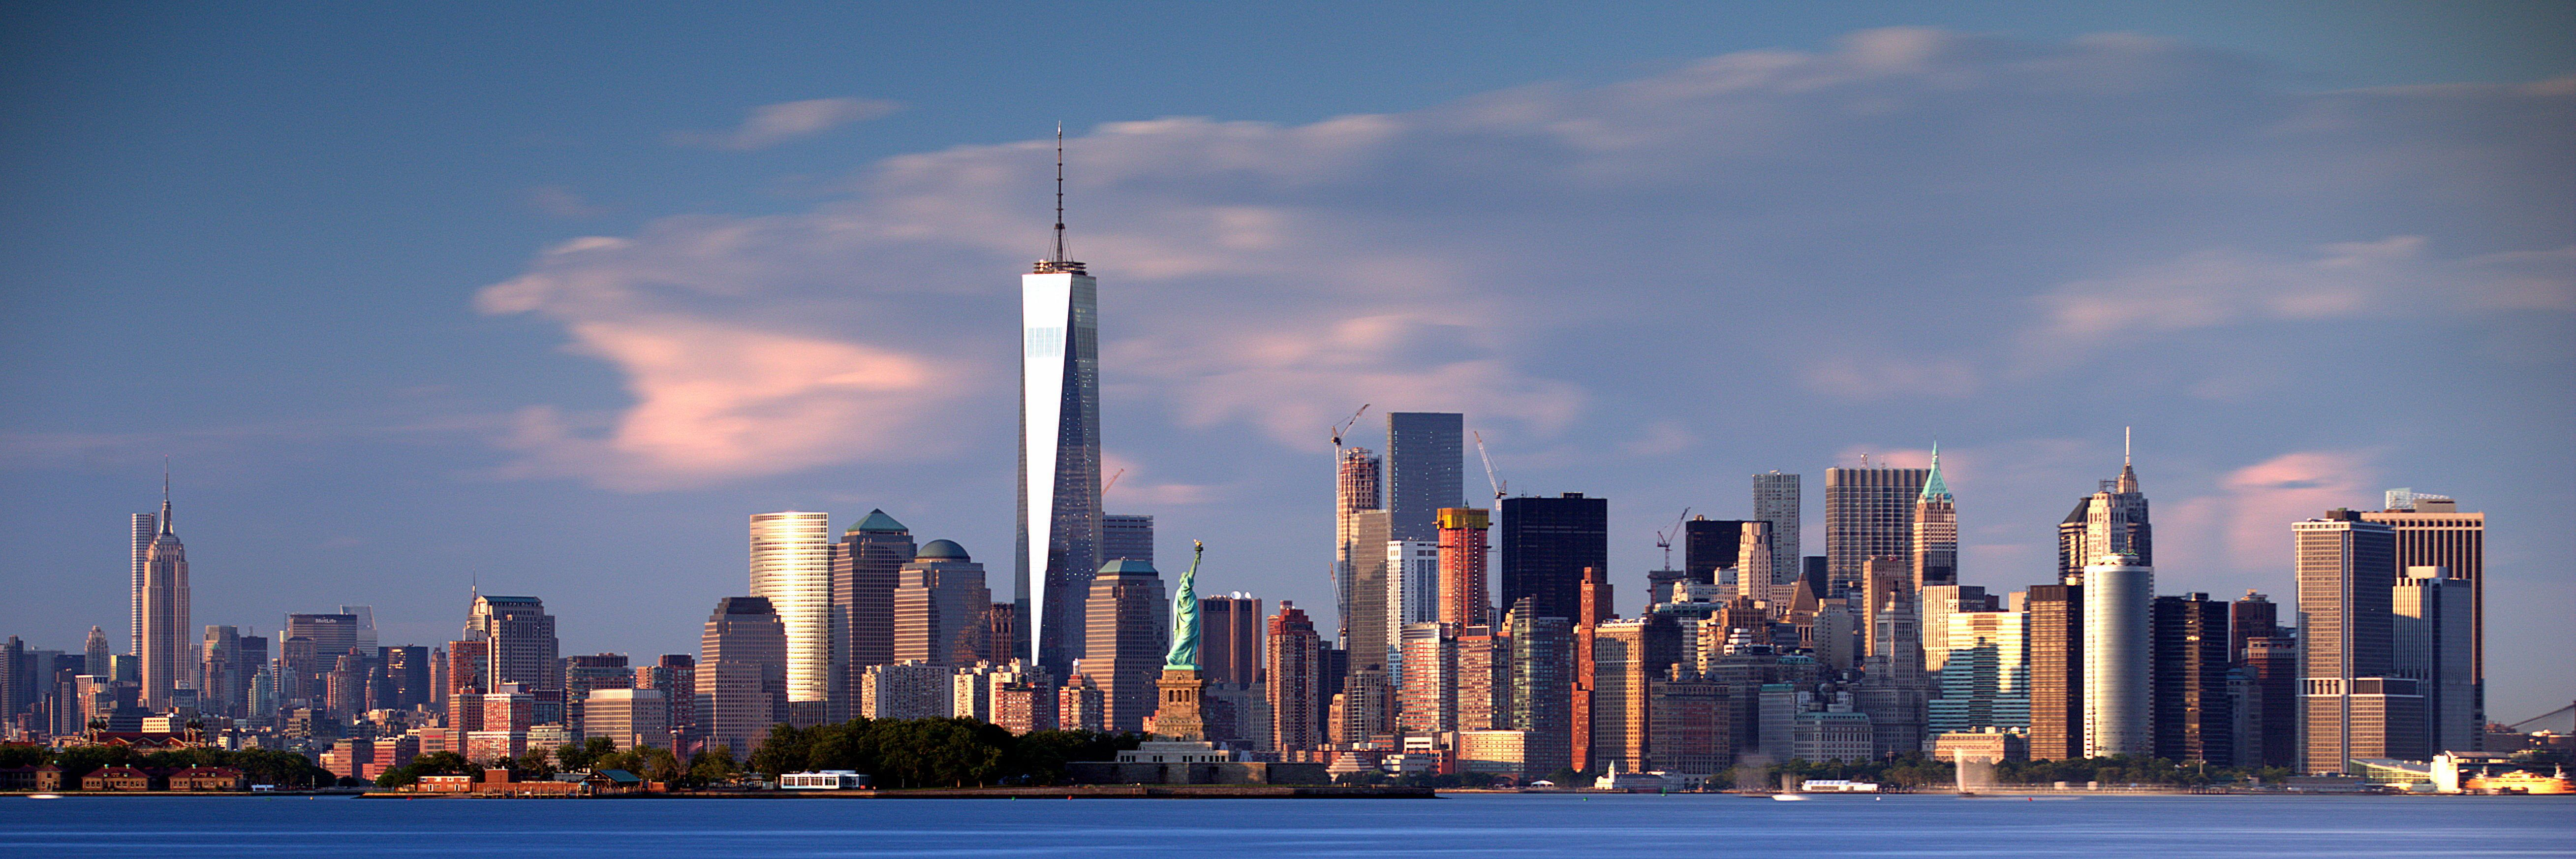 New York City Skyline Under Blue Sky Nyc Downtown Statue Of Liberty Golden Hour New York City Blue Sky Icon Skyline City Skyline Statue Of Liberty Wallpaper